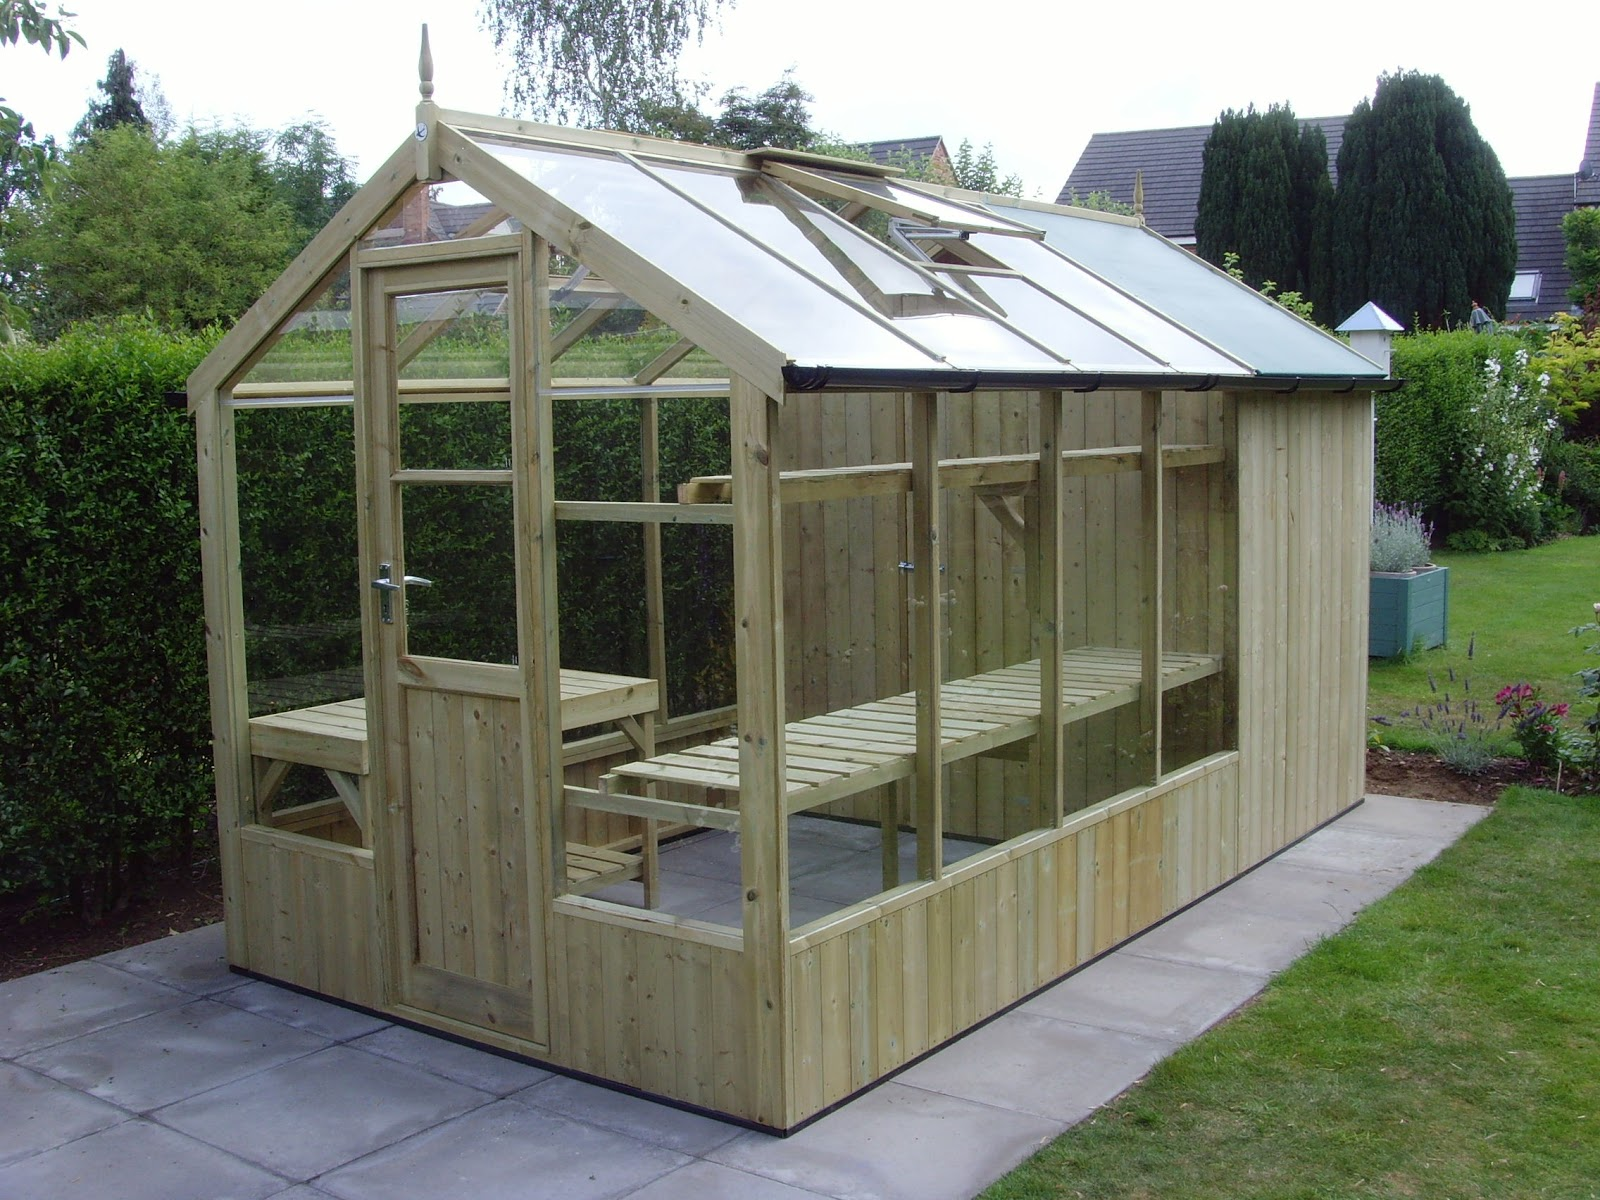 Wooden Lean To Greenhouse Kits Modern House